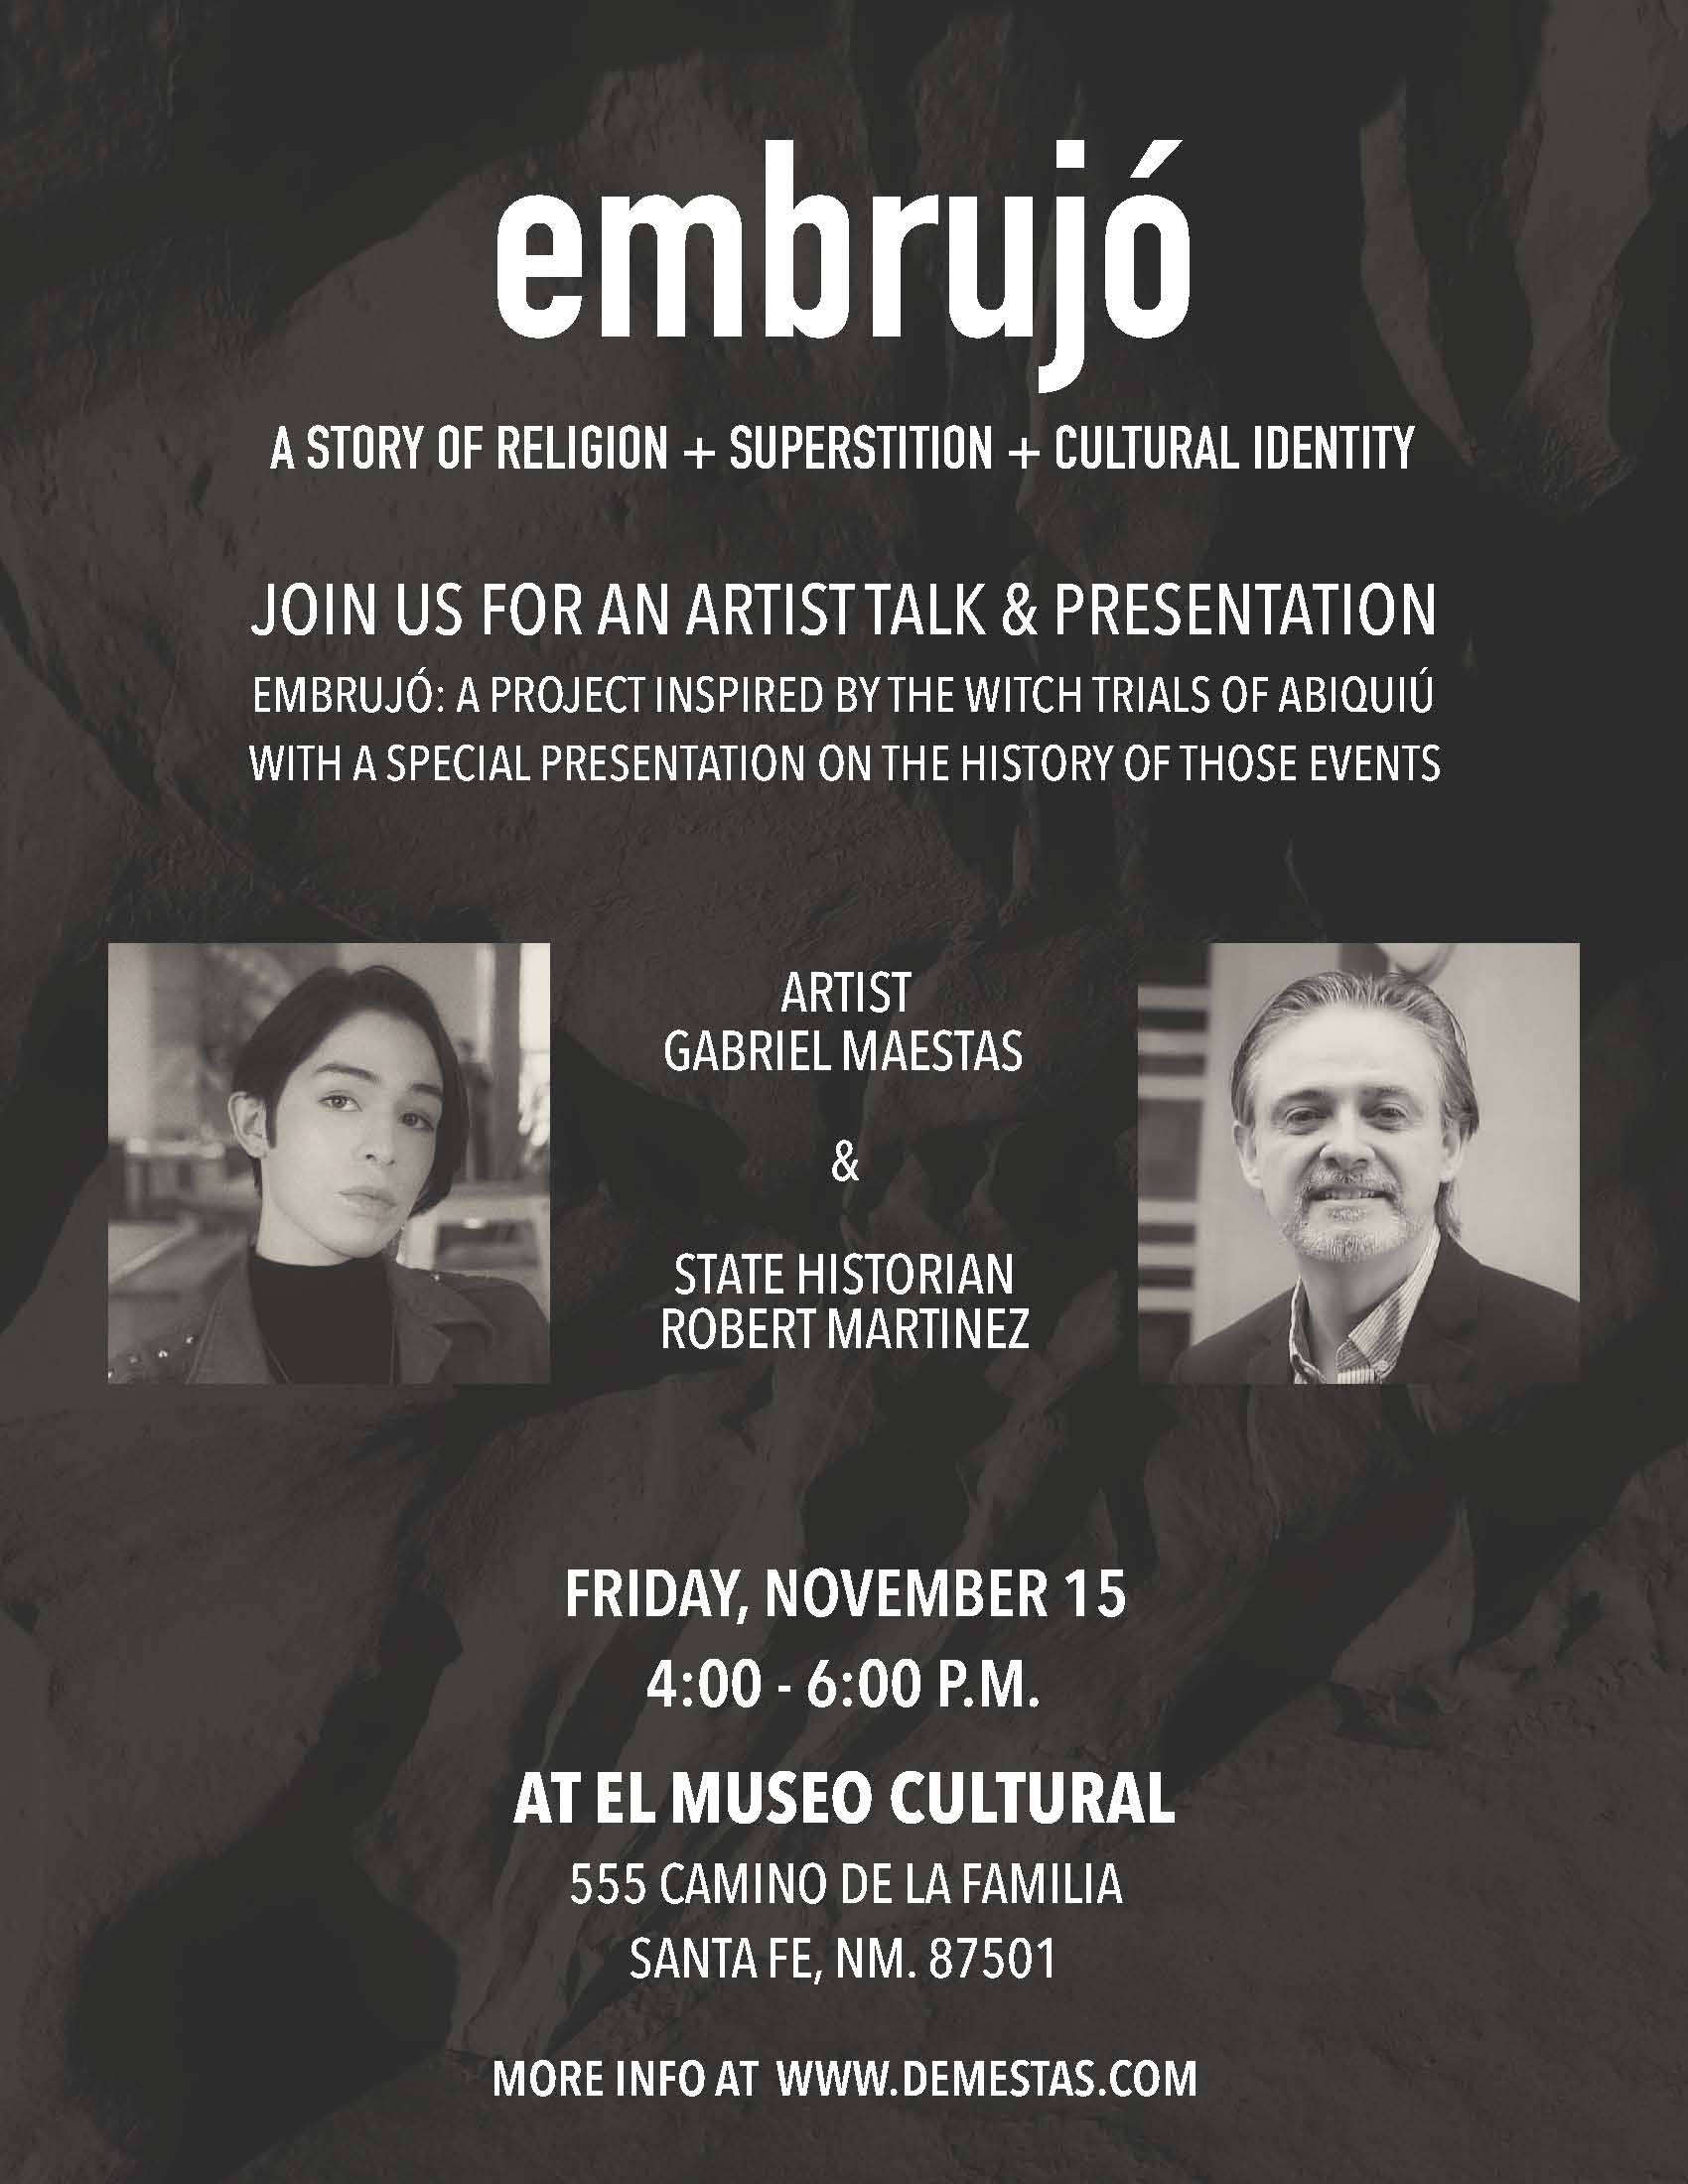 EMBRUJÓ: A STORY OF RELIGION, SUPERSTITION AND CULTURAL IDENTITY @ El Museo Cultural de Santa Fe | Santa Fe | New Mexico | United States